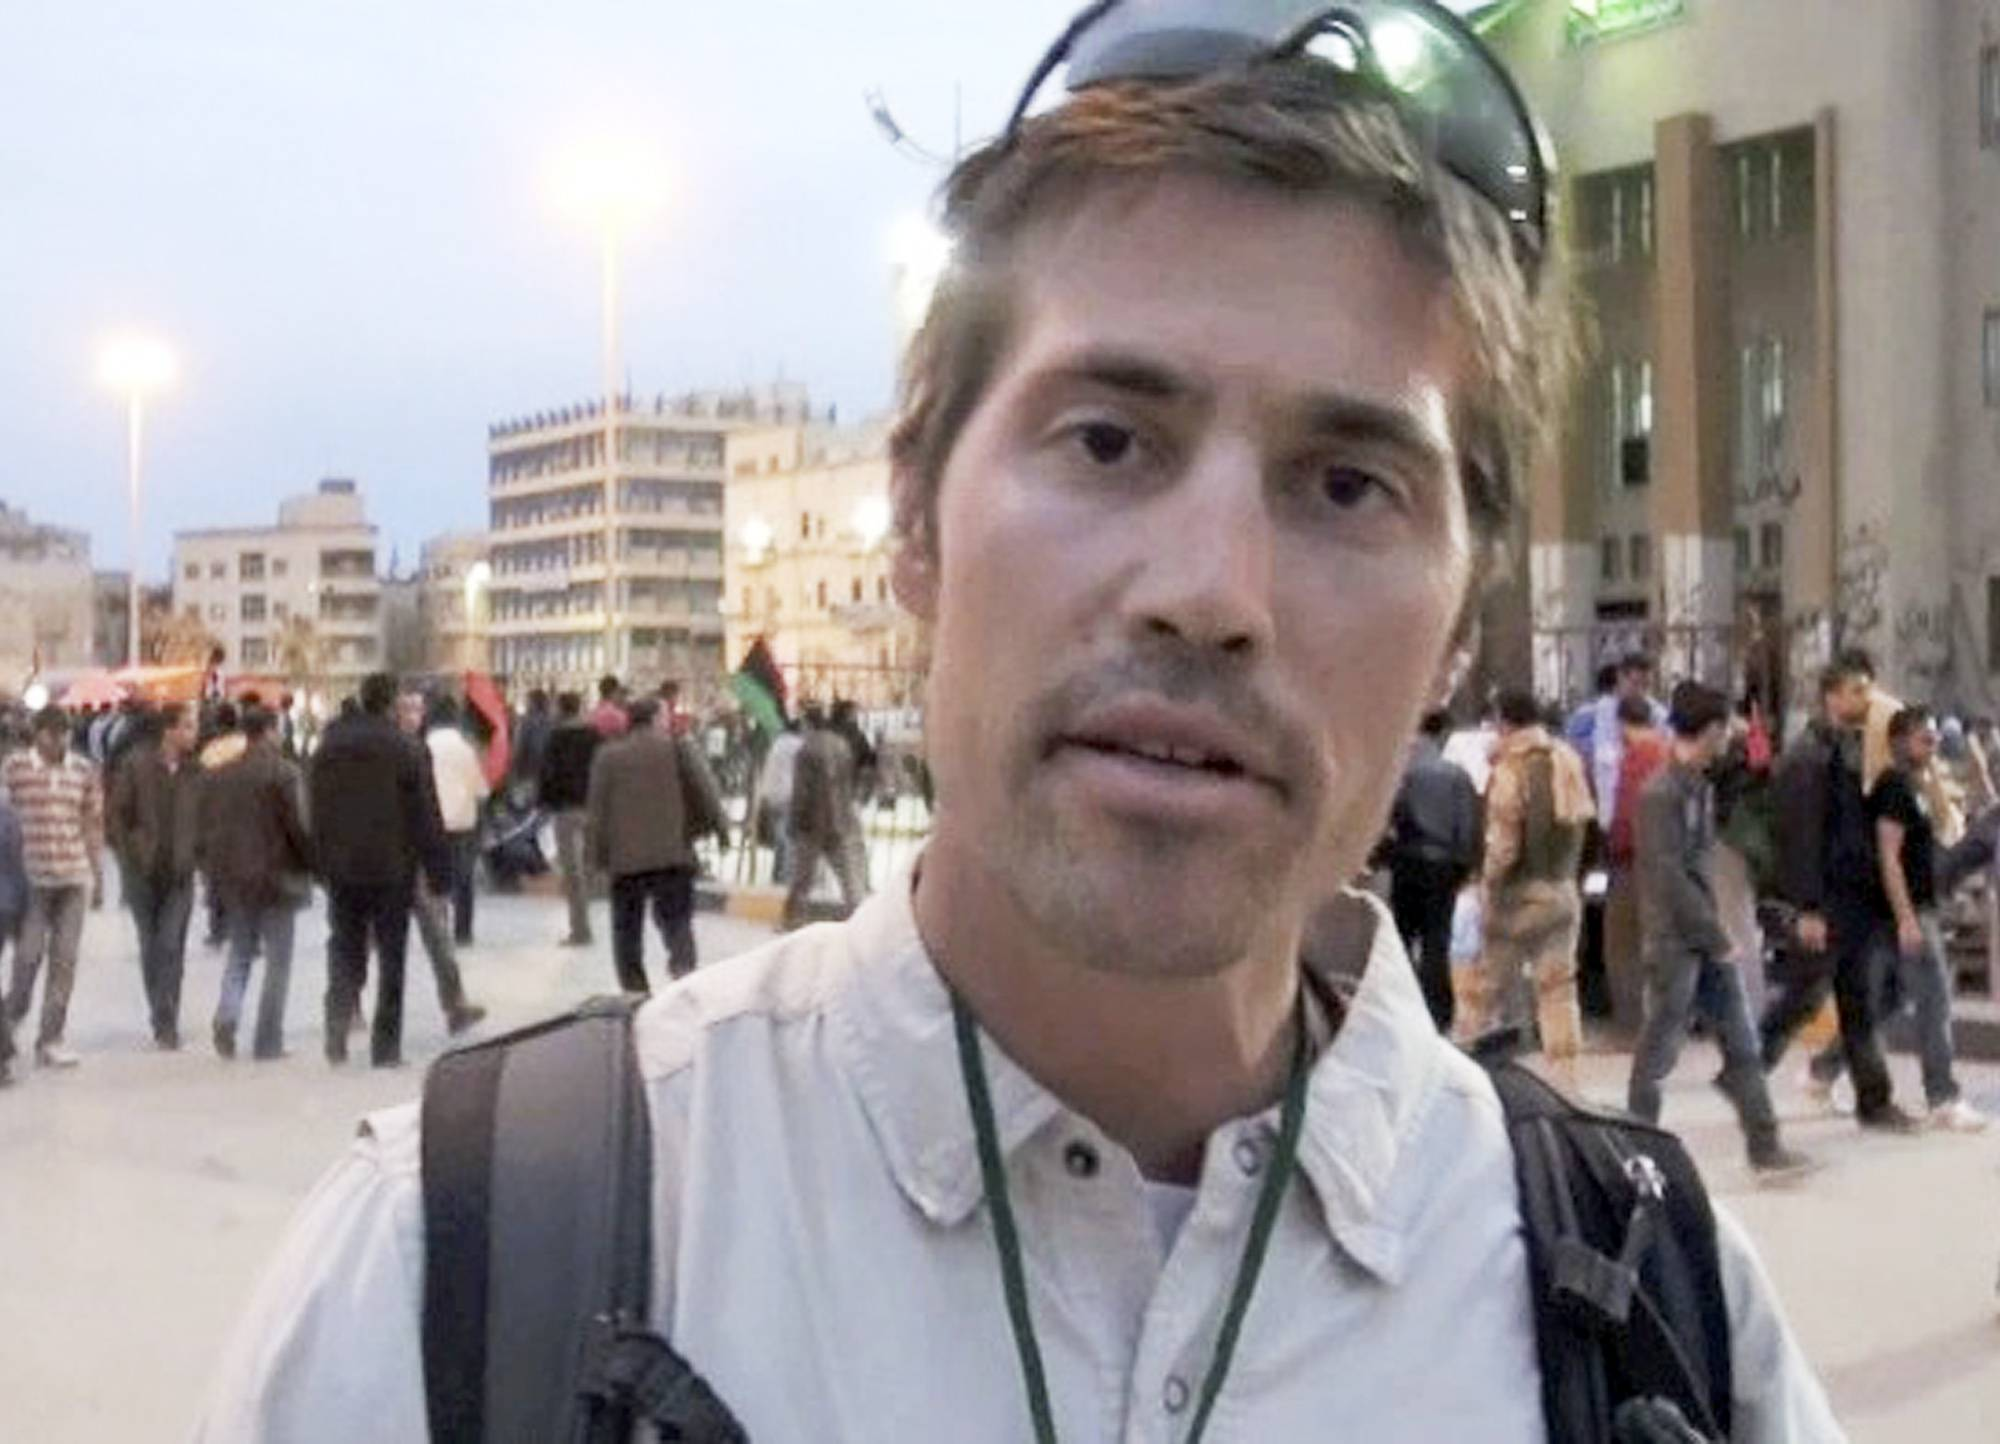 James Foley of Rochester, N.H., a freelance contributor for GlobalPost, is seen in Benghazi, Libya, April 7, 2011. In a horrifying act of revenge for U.S. airstrikes in northern Iraq, militants with the Islamic State extremist group beheaded Foley -- and are threatening to kill another hostage, U.S. officials say.